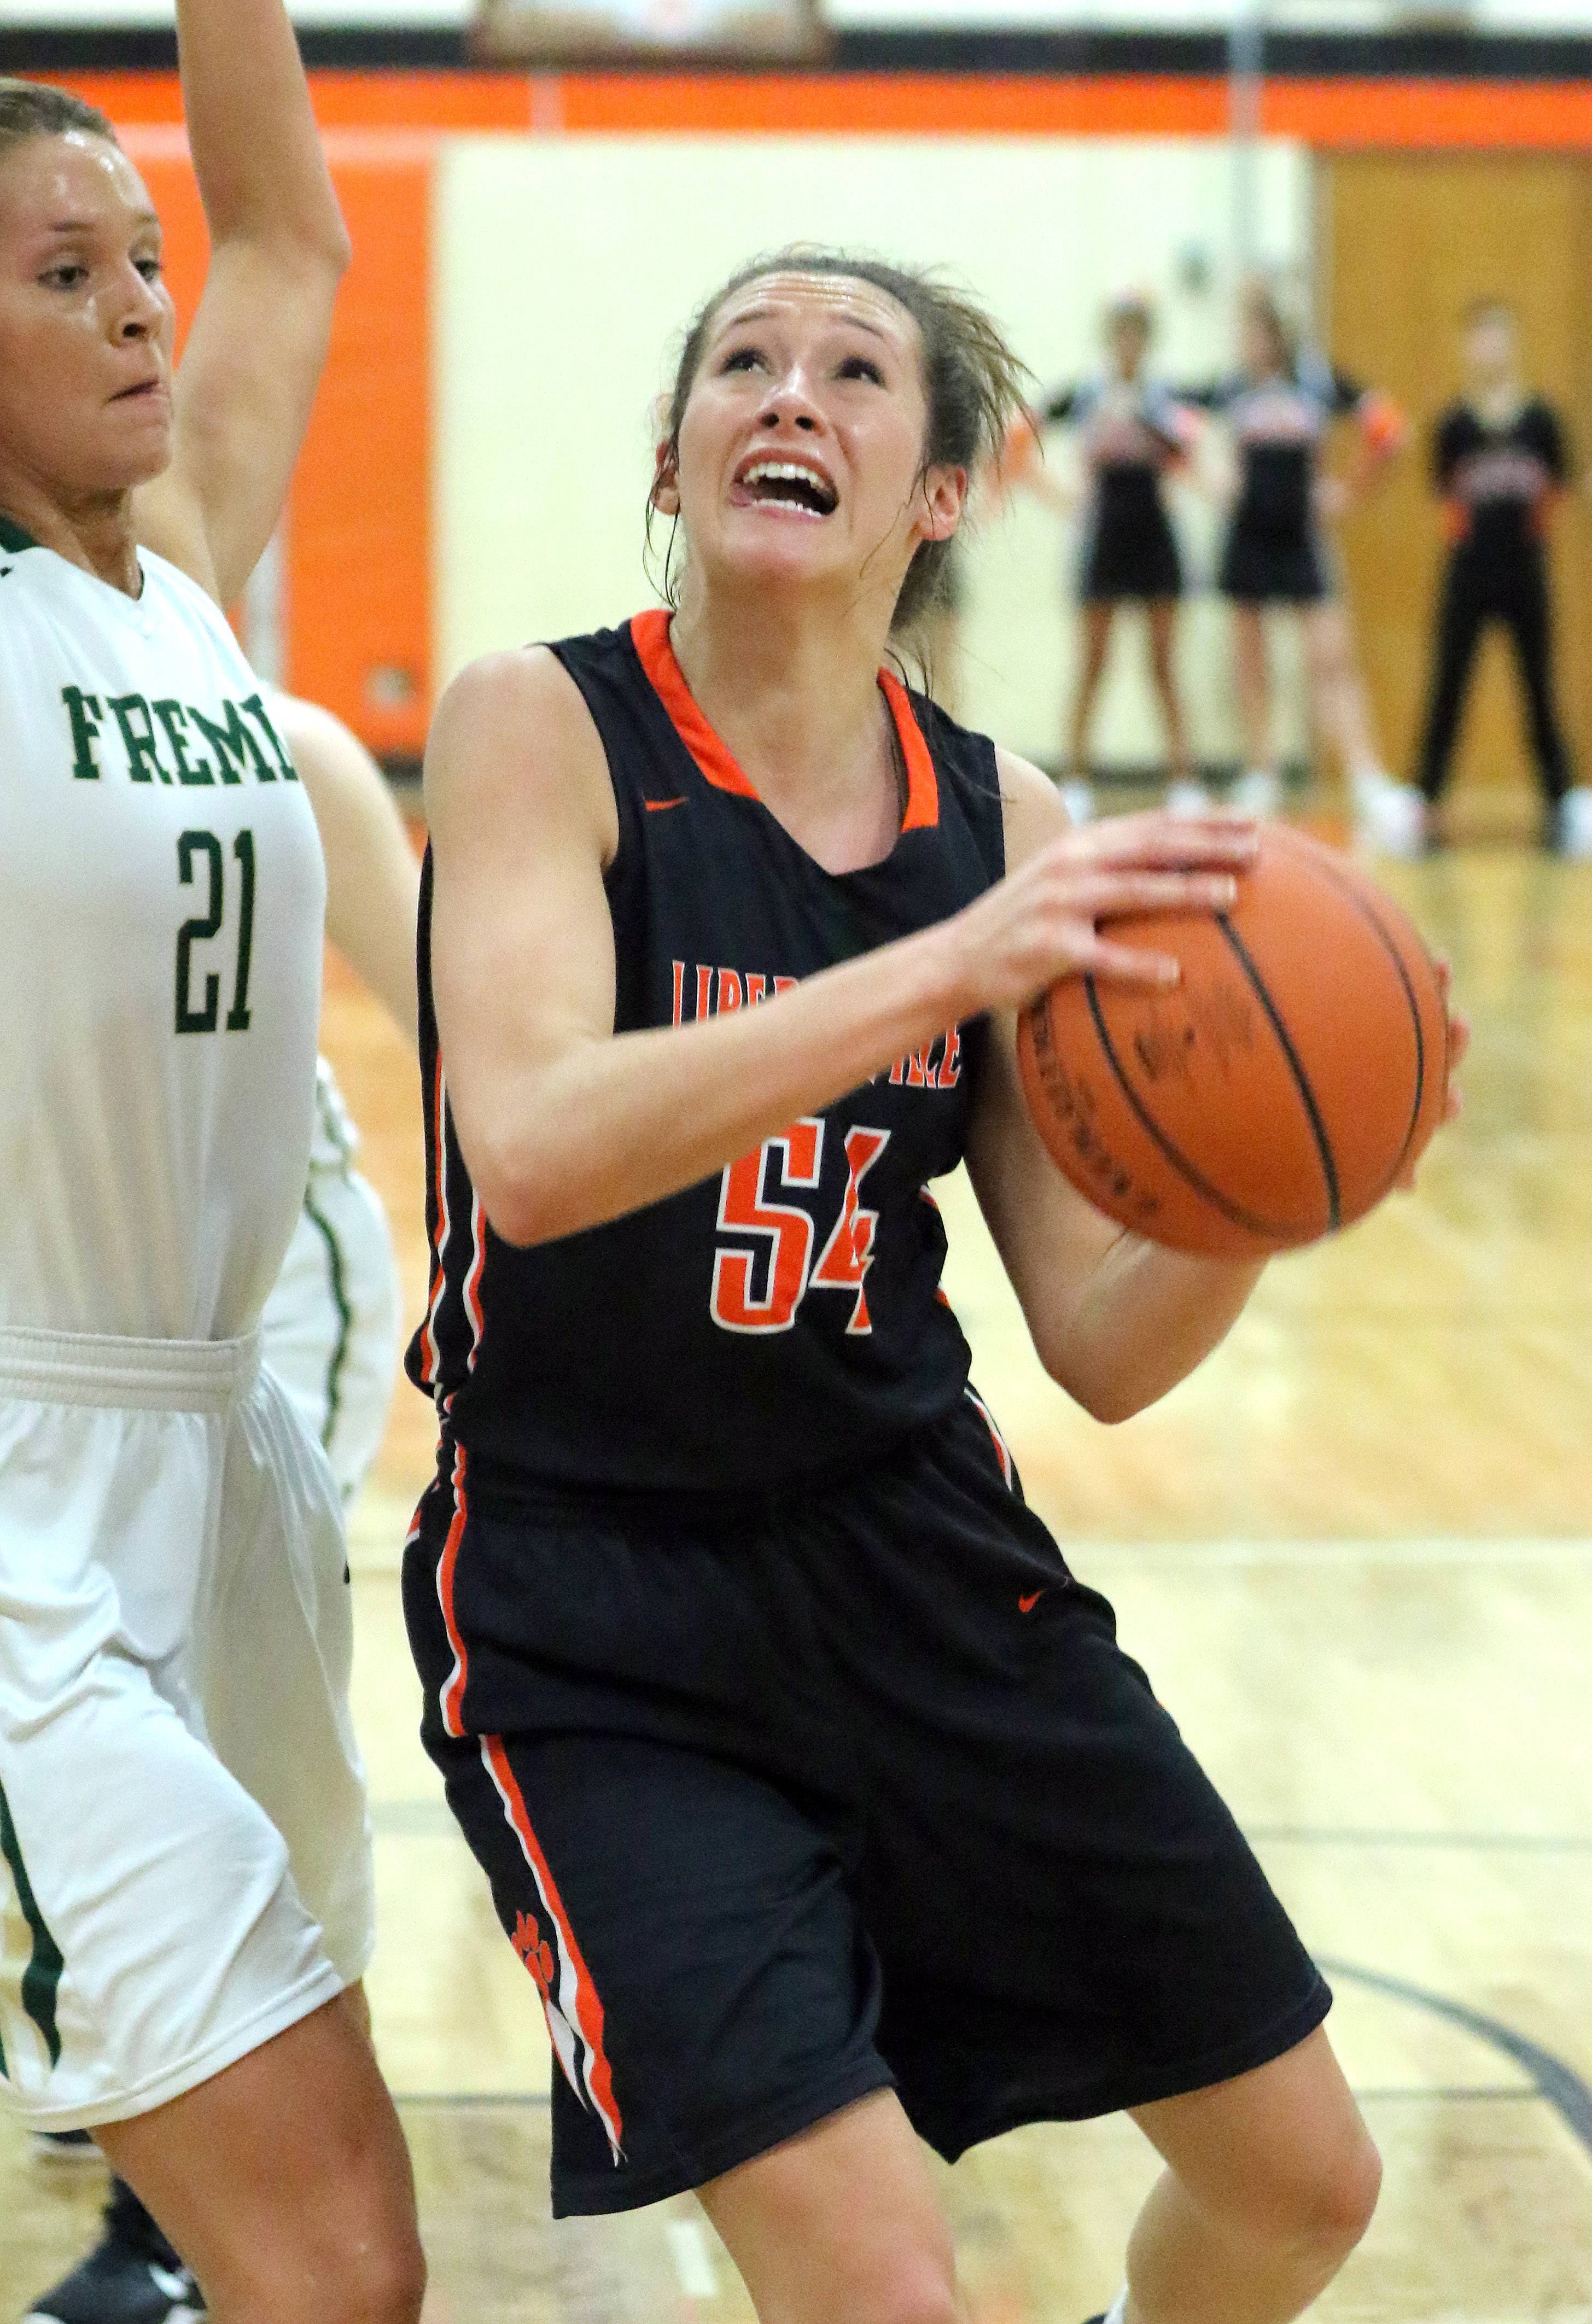 Libertyville's Claire Keefe, right, drives on Fremd's Grace Tworek during Class 4A sectional semifinal play Monday at Libertyville.